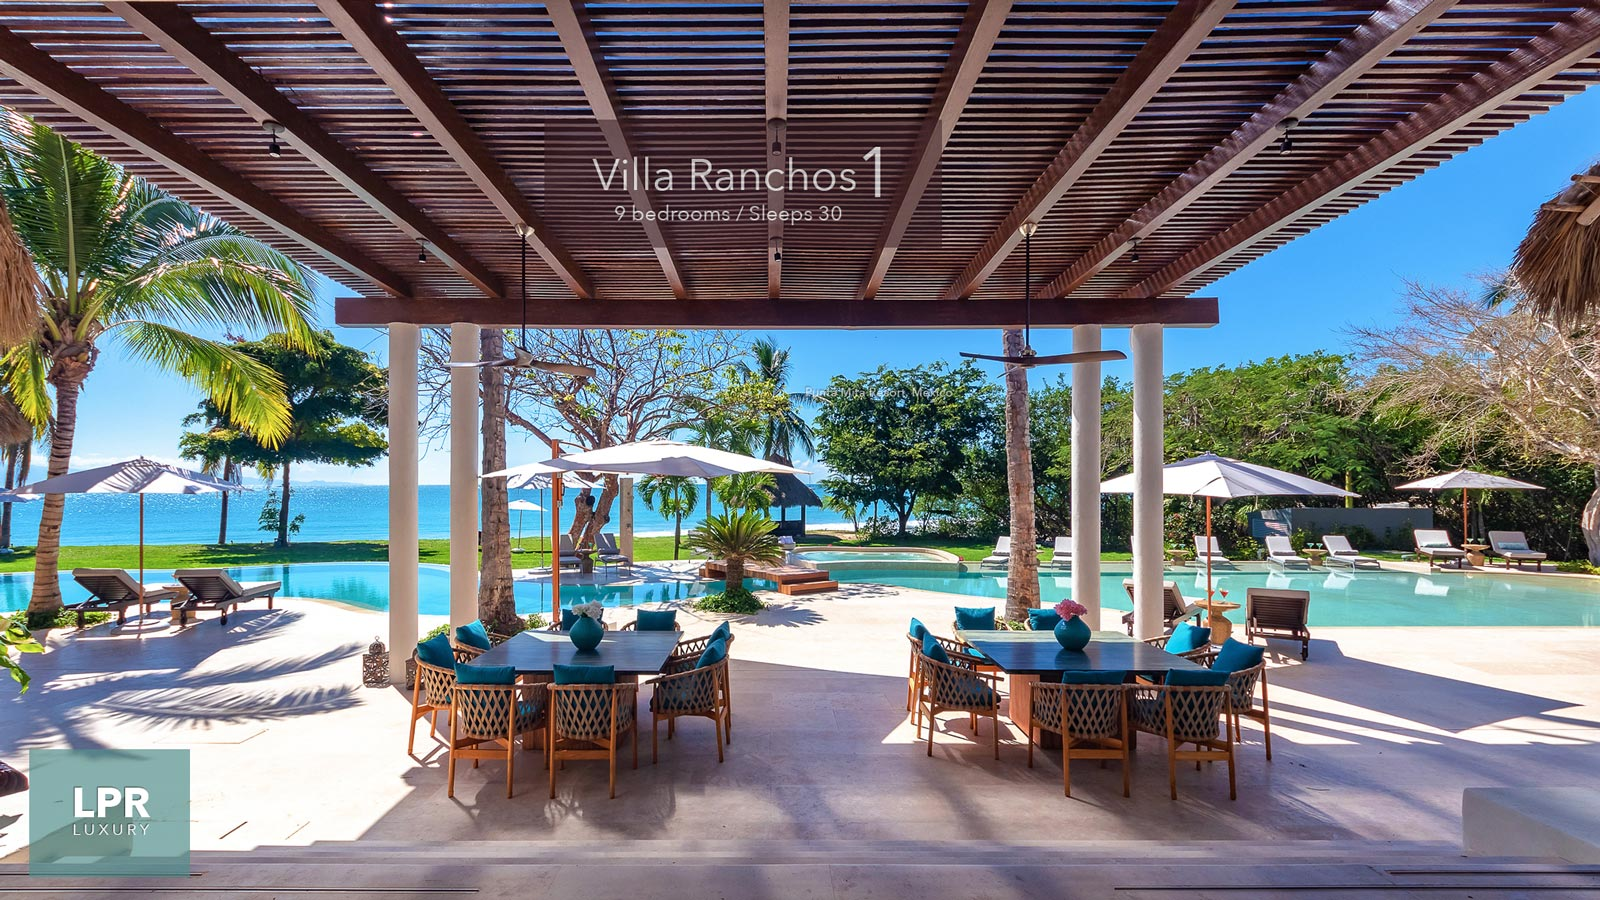 Villa Ranchos 1 - Ultra Luxury Vacation Villa Rental at the Punta Mita Resort, Mexico